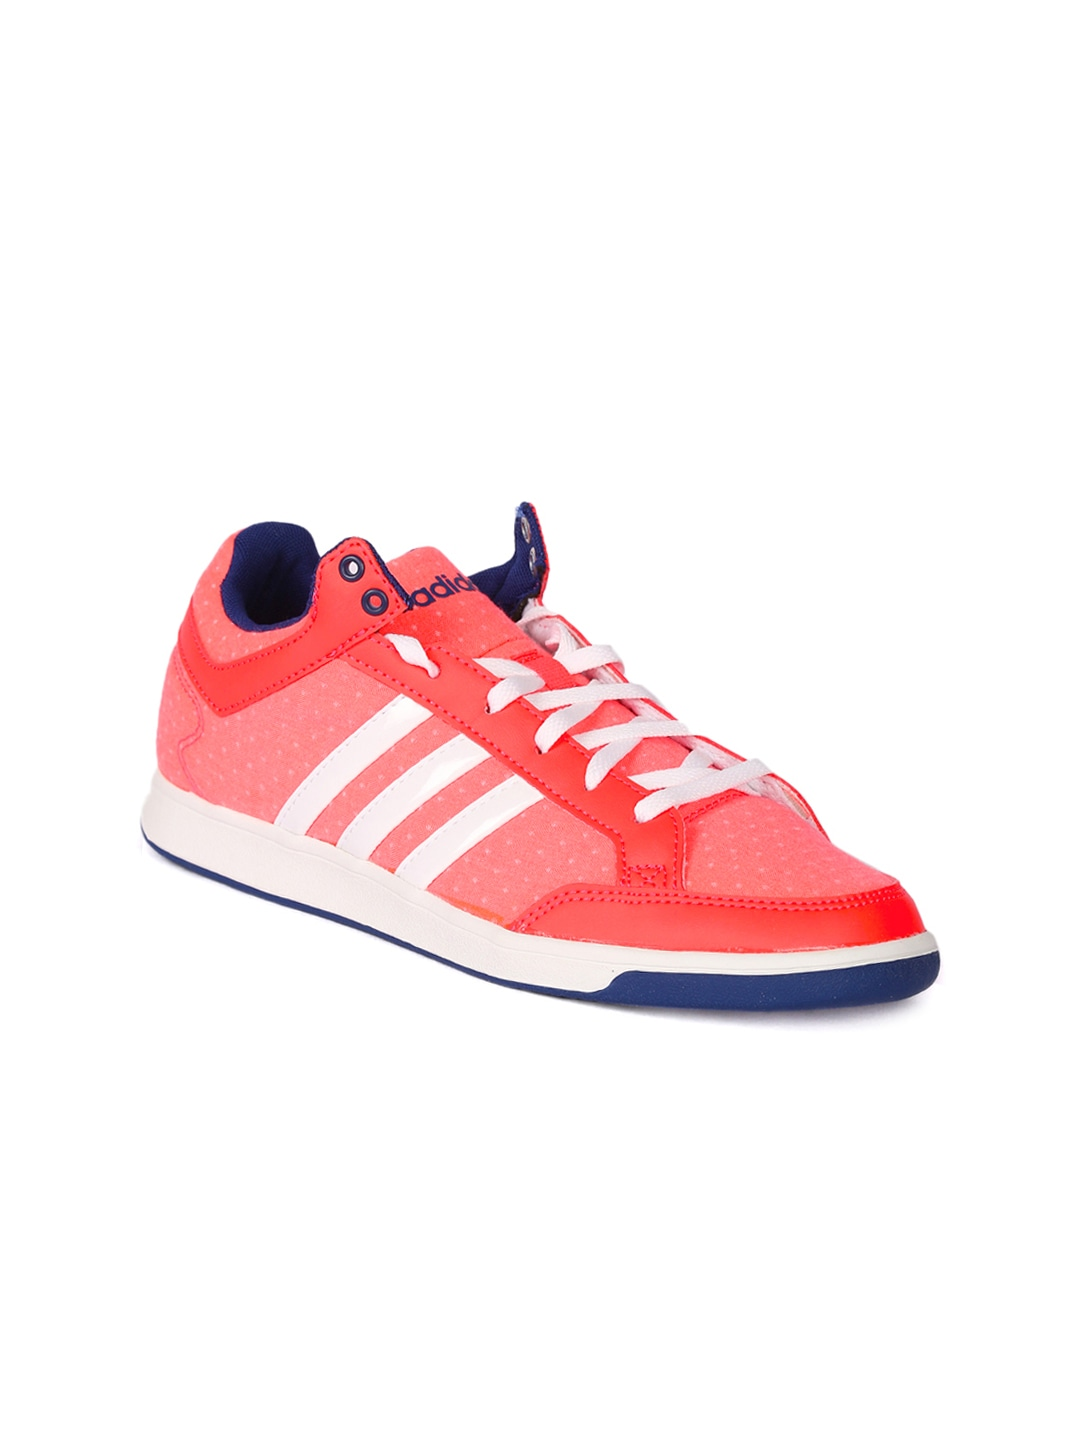 Adidas Neo 8K : shop perfect Adidas Superstar Shoes, Adidas NMD